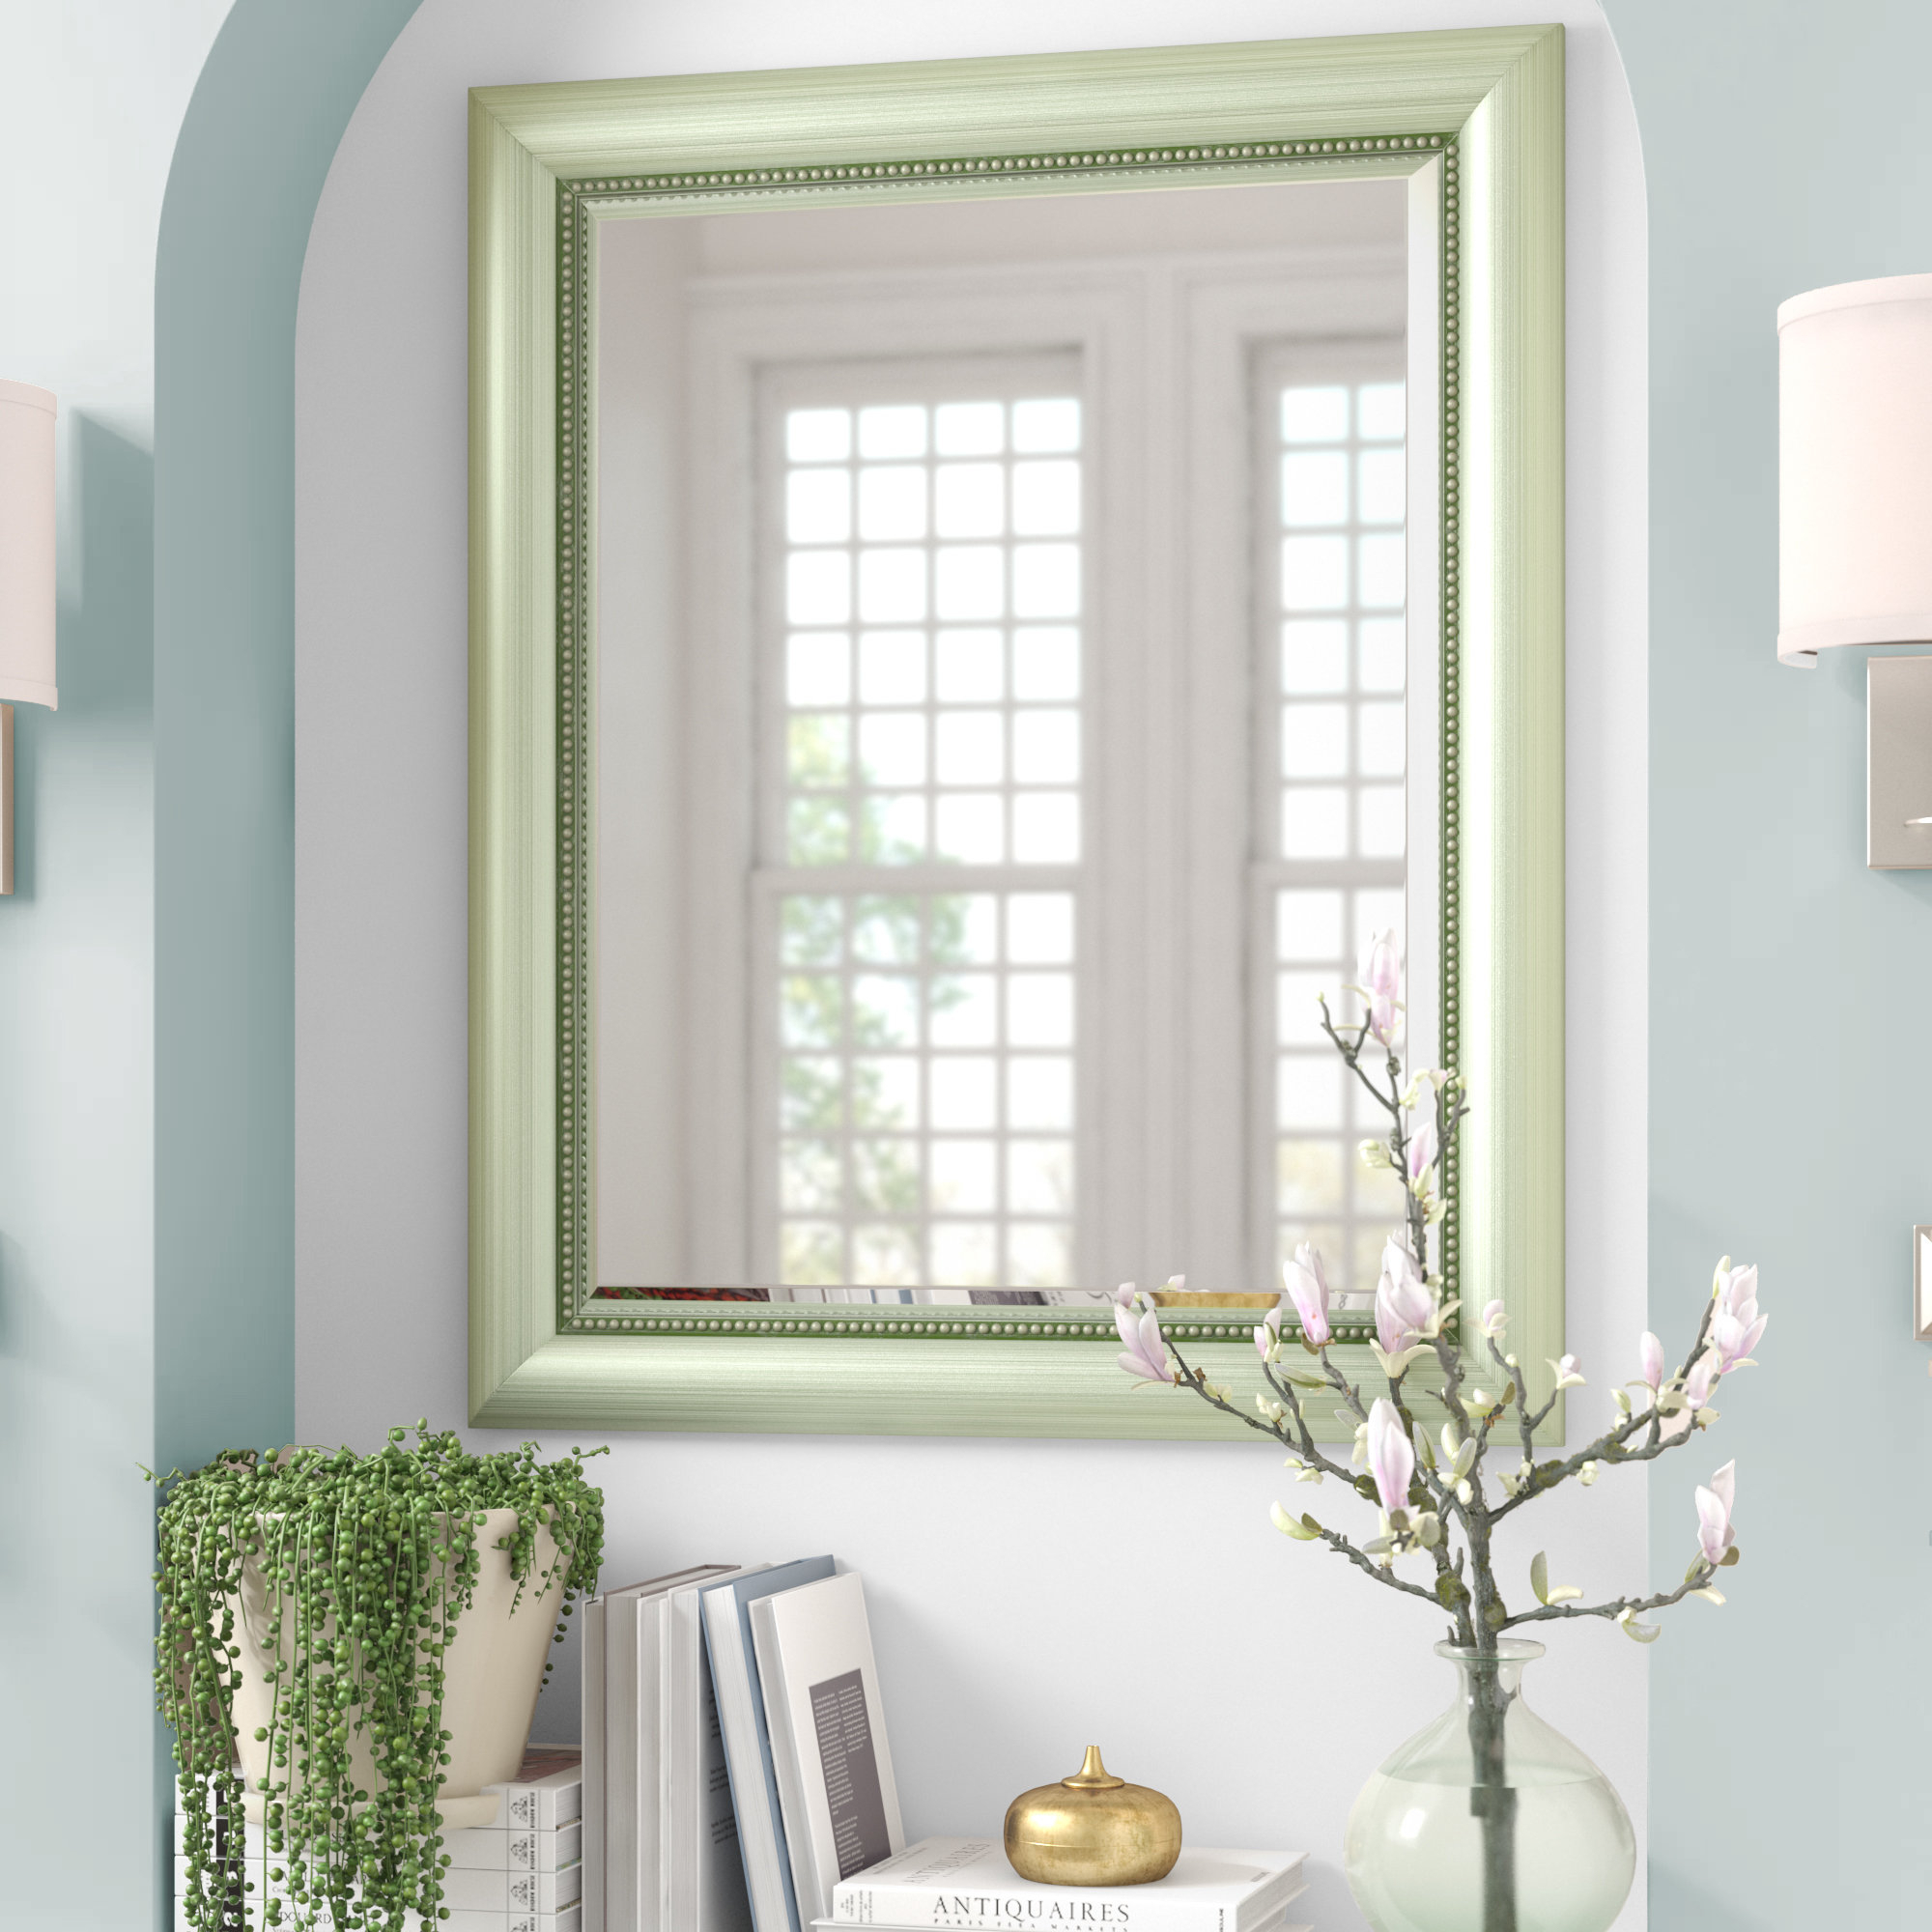 Traditional Beveled Wall Mirror In Traditional Beveled Wall Mirrors (View 10 of 20)